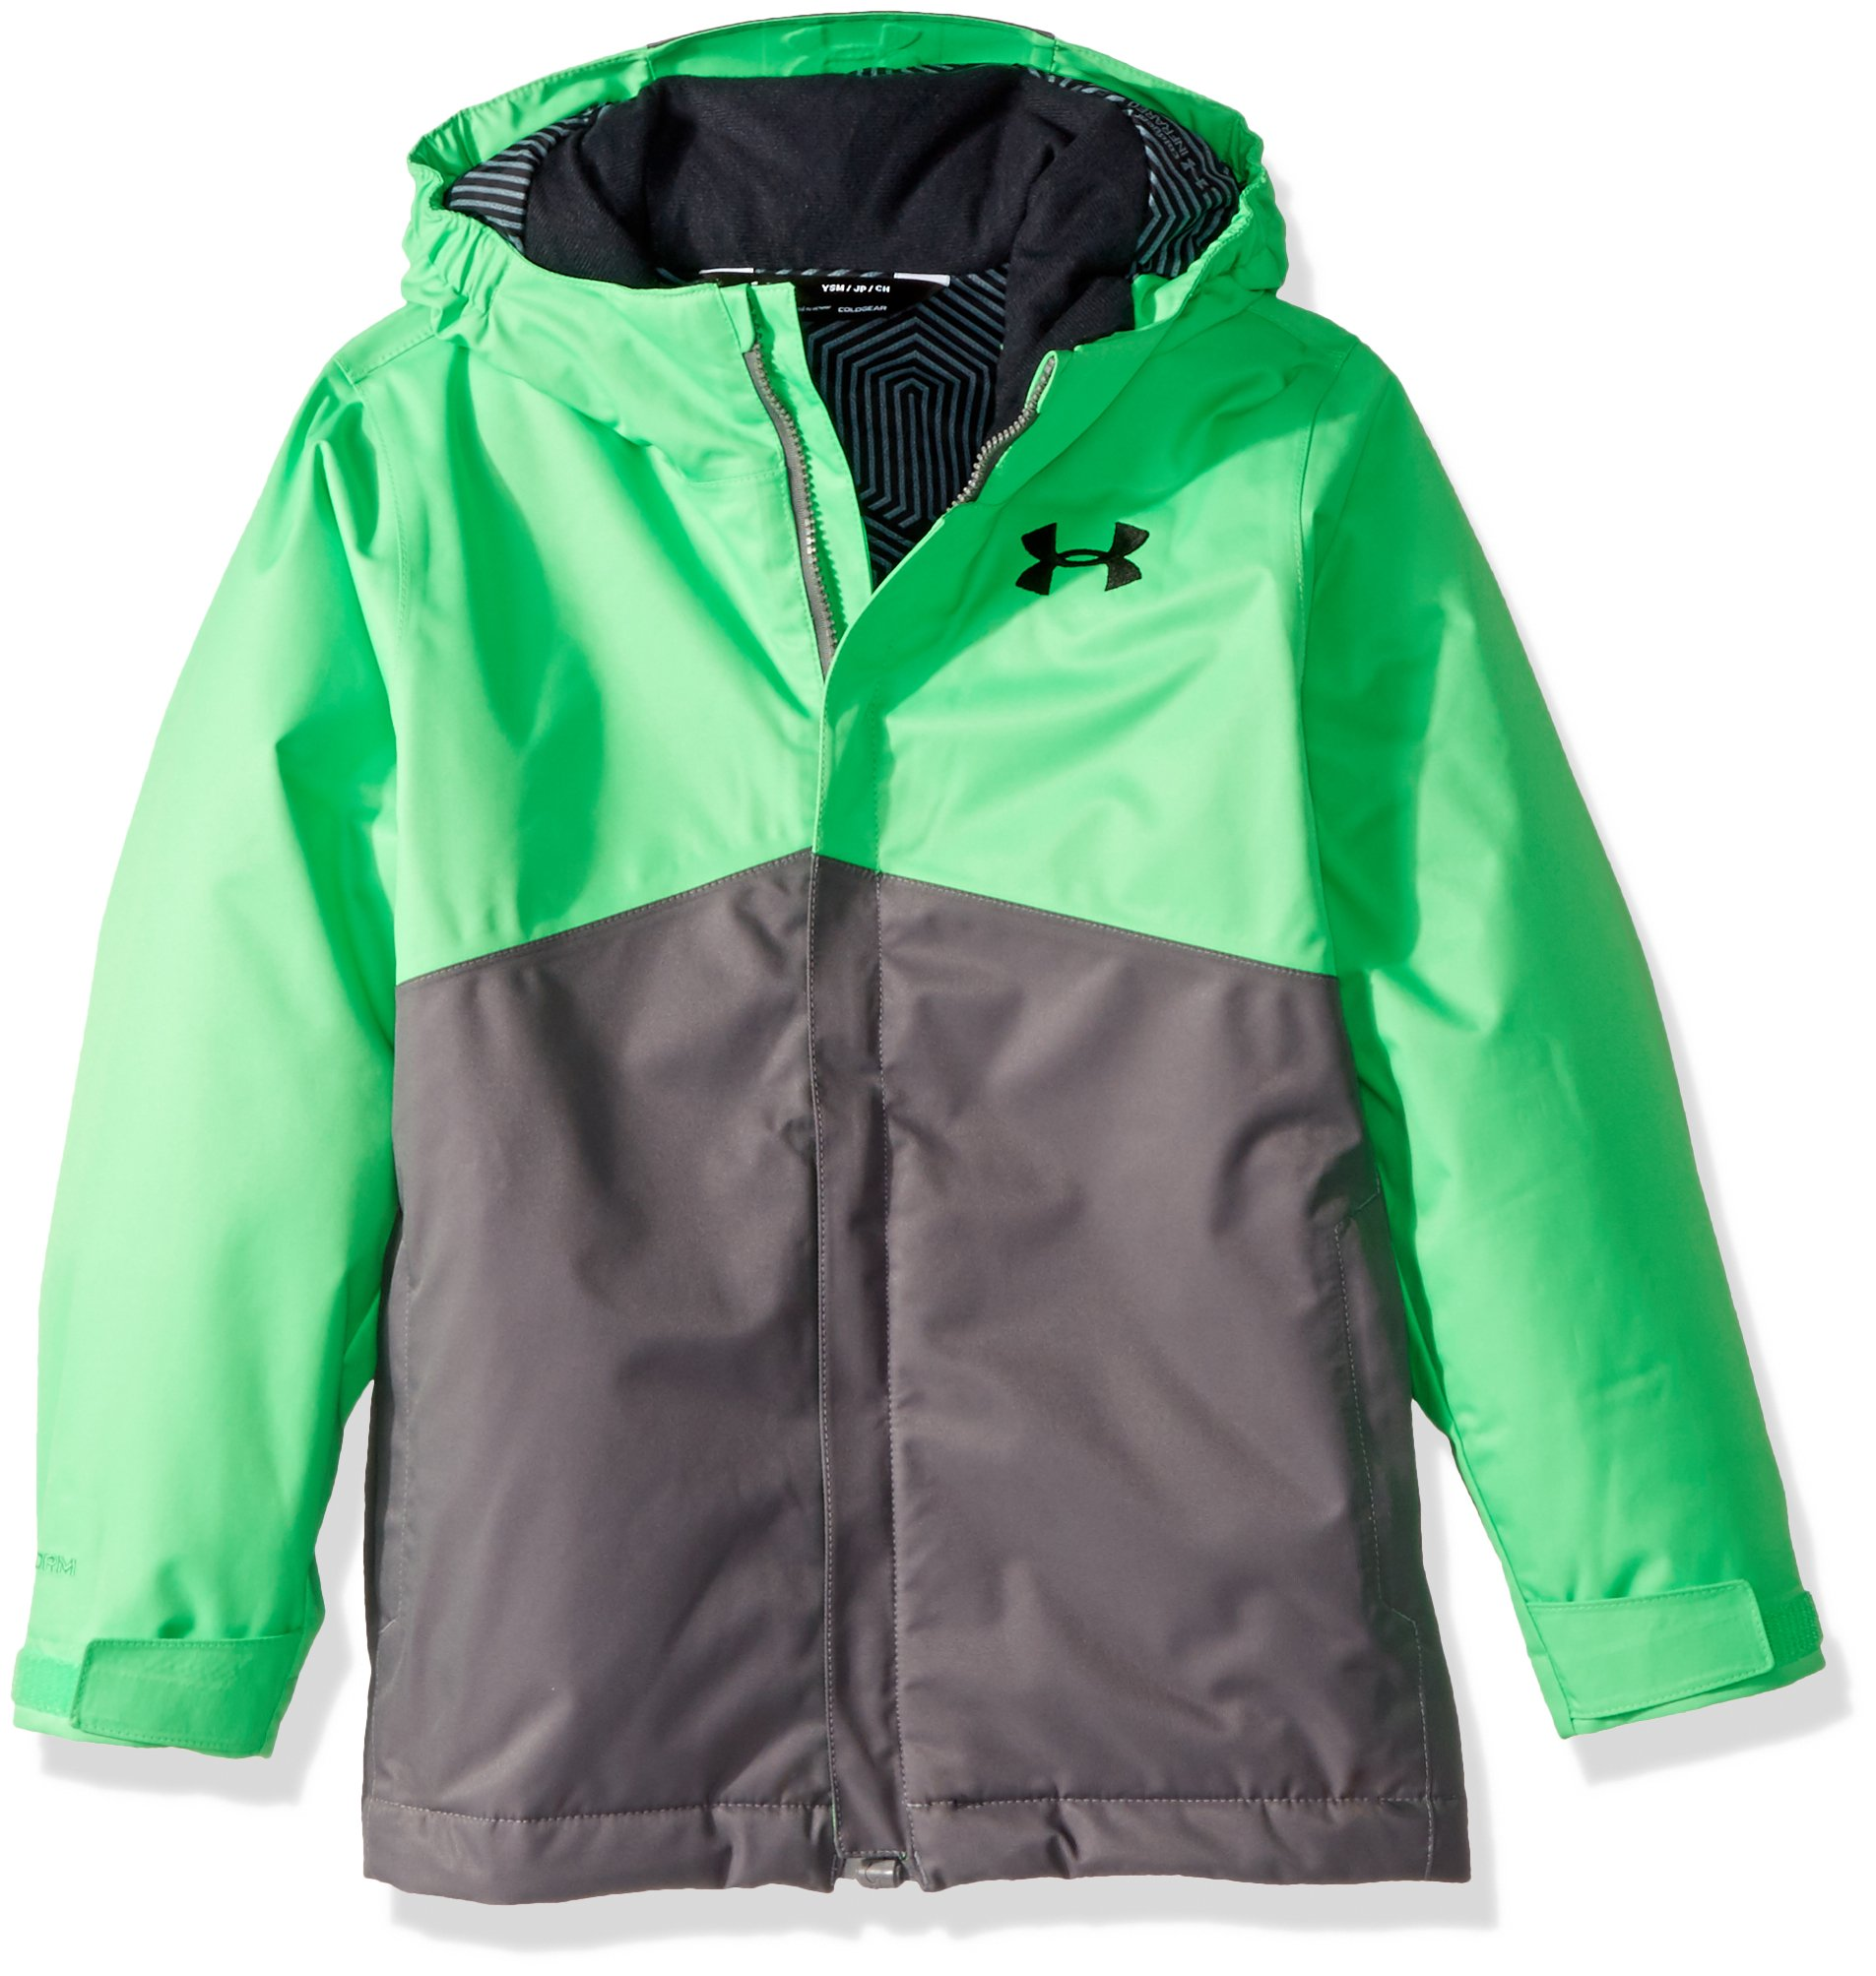 Under Armour Boys' Storm Freshies Jacket, Lime Twist/Graphite, Youth X-Large by Under Armour